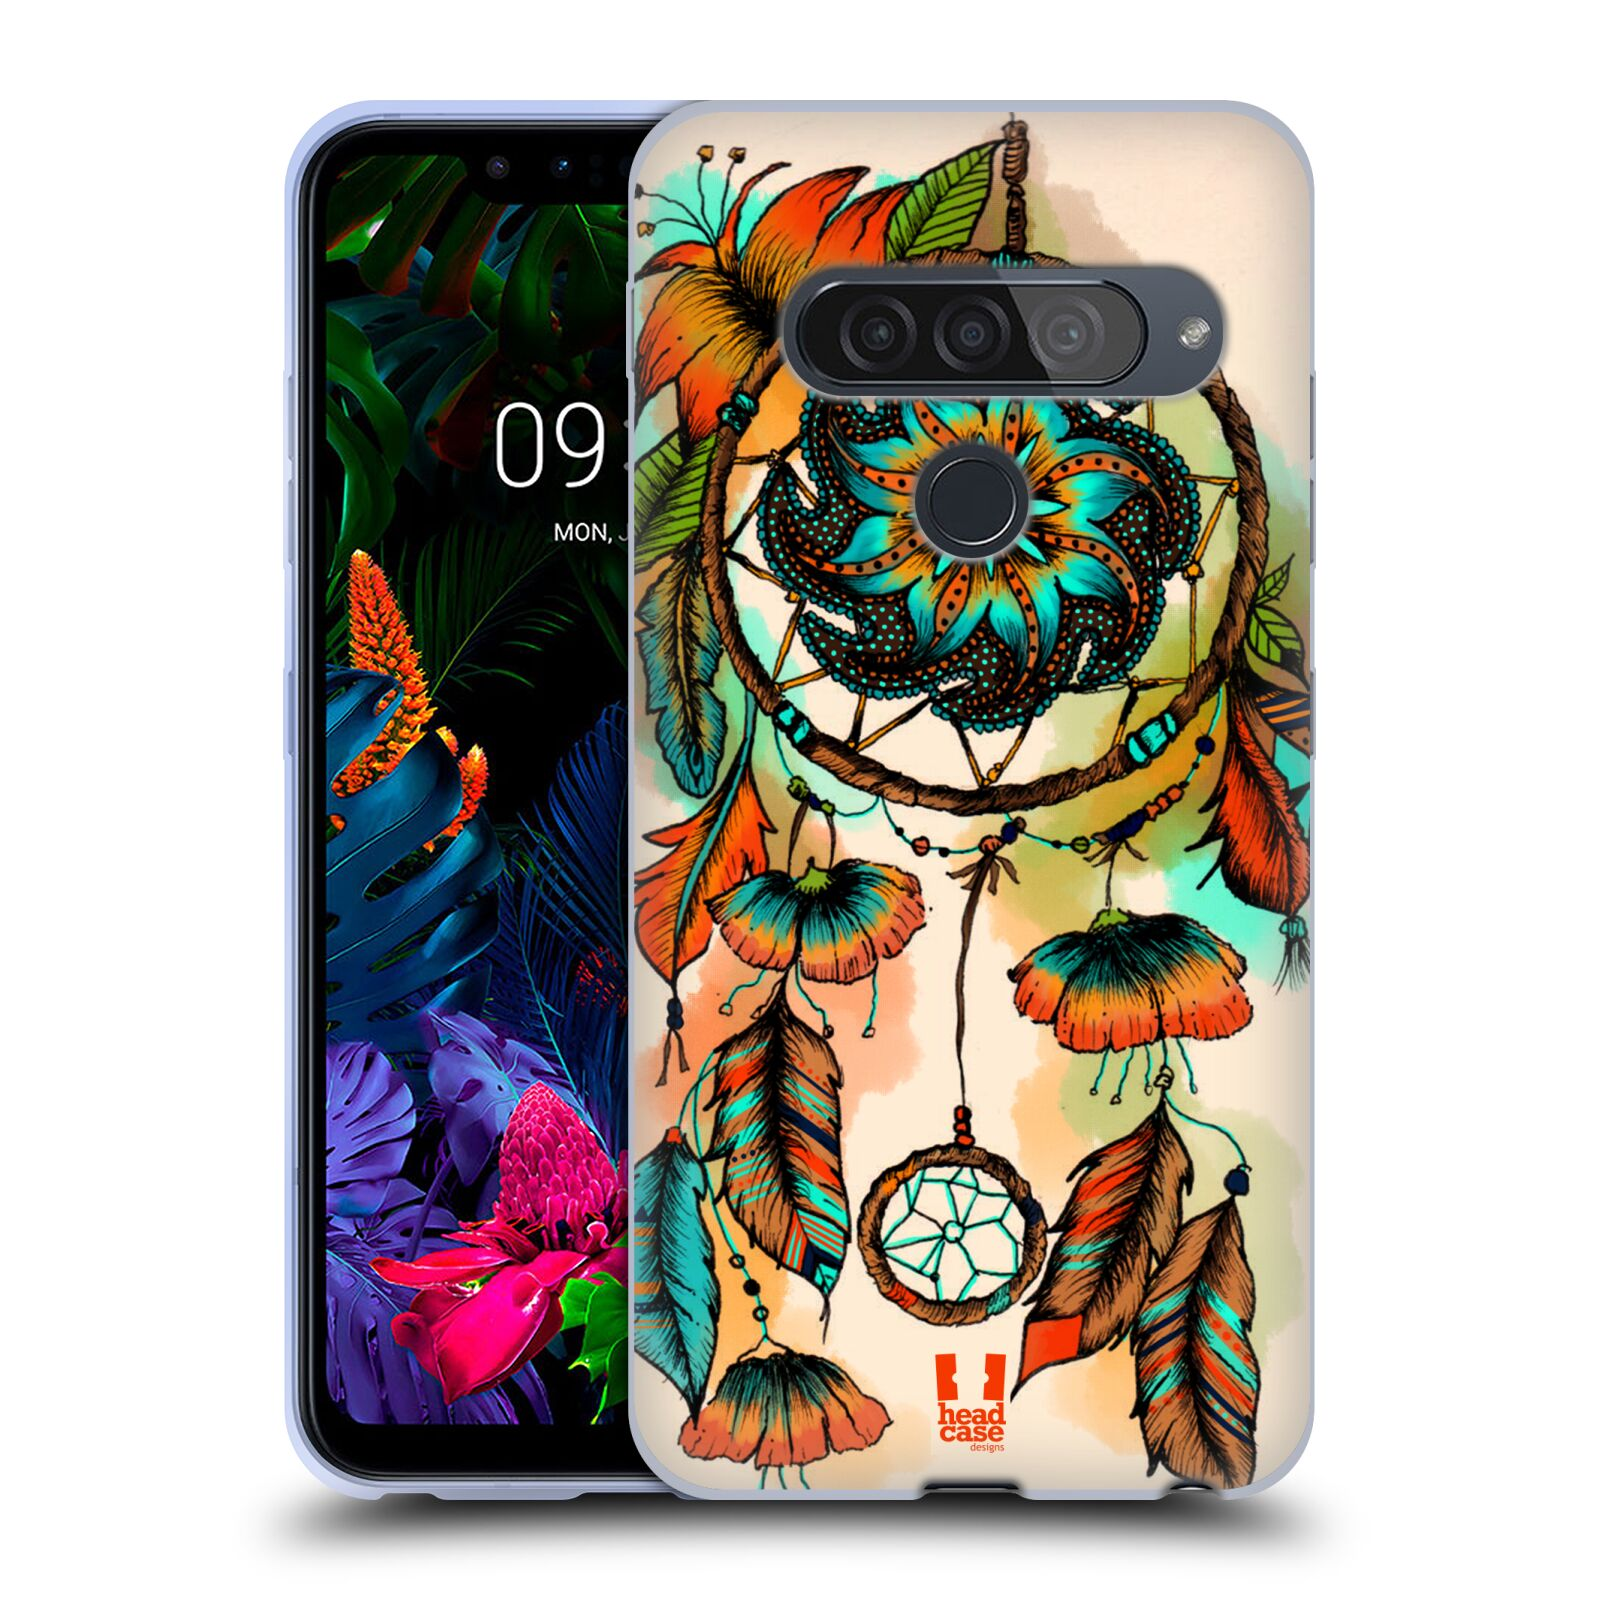 Silikonové pouzdro na mobil LG G8s ThinQ - Head Case - BLOOM APRICOT